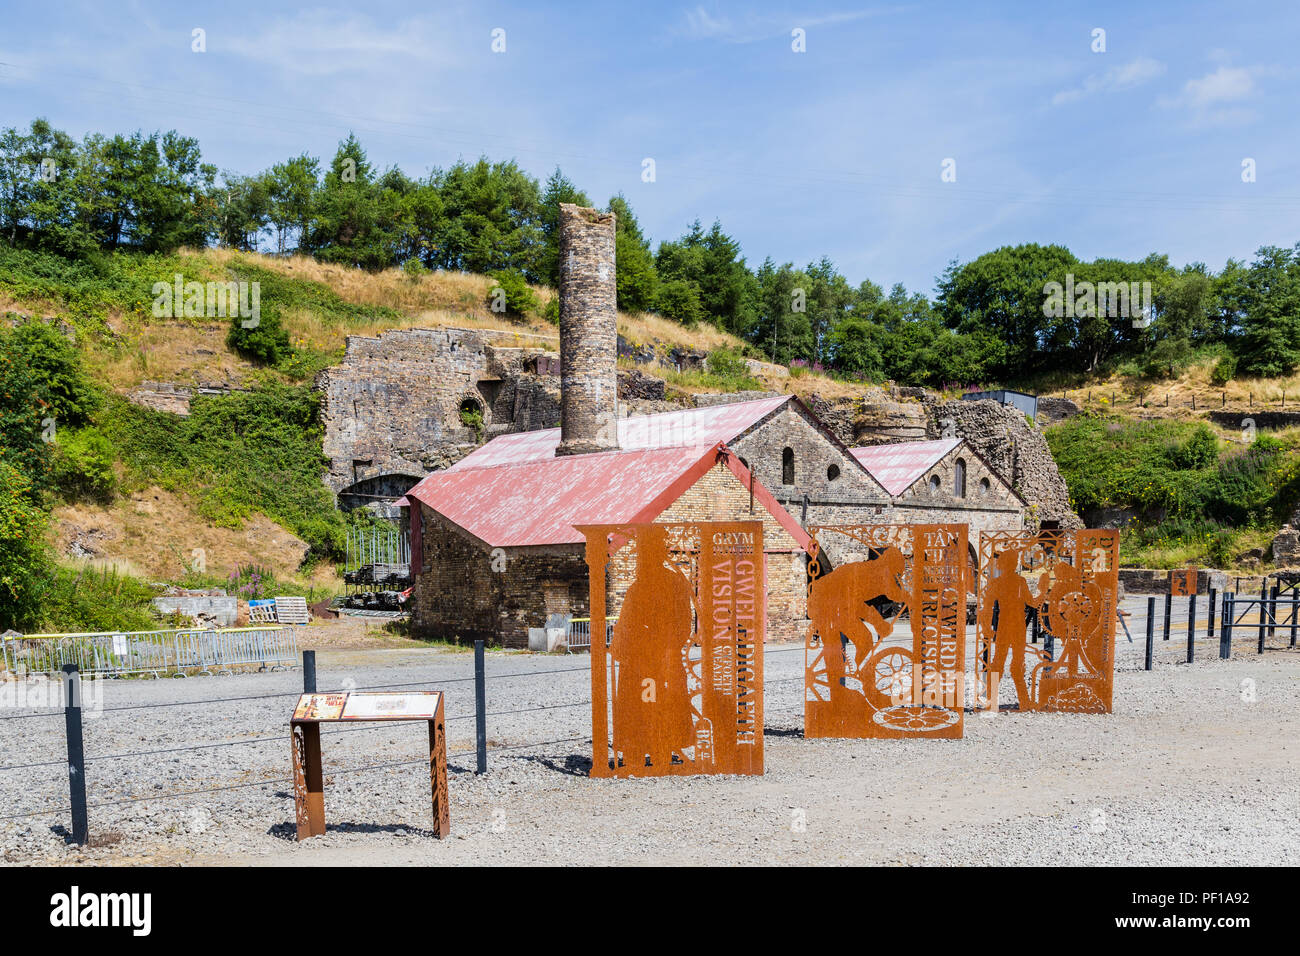 Blaenavon Ironworks in Wales, UK Stock Photo